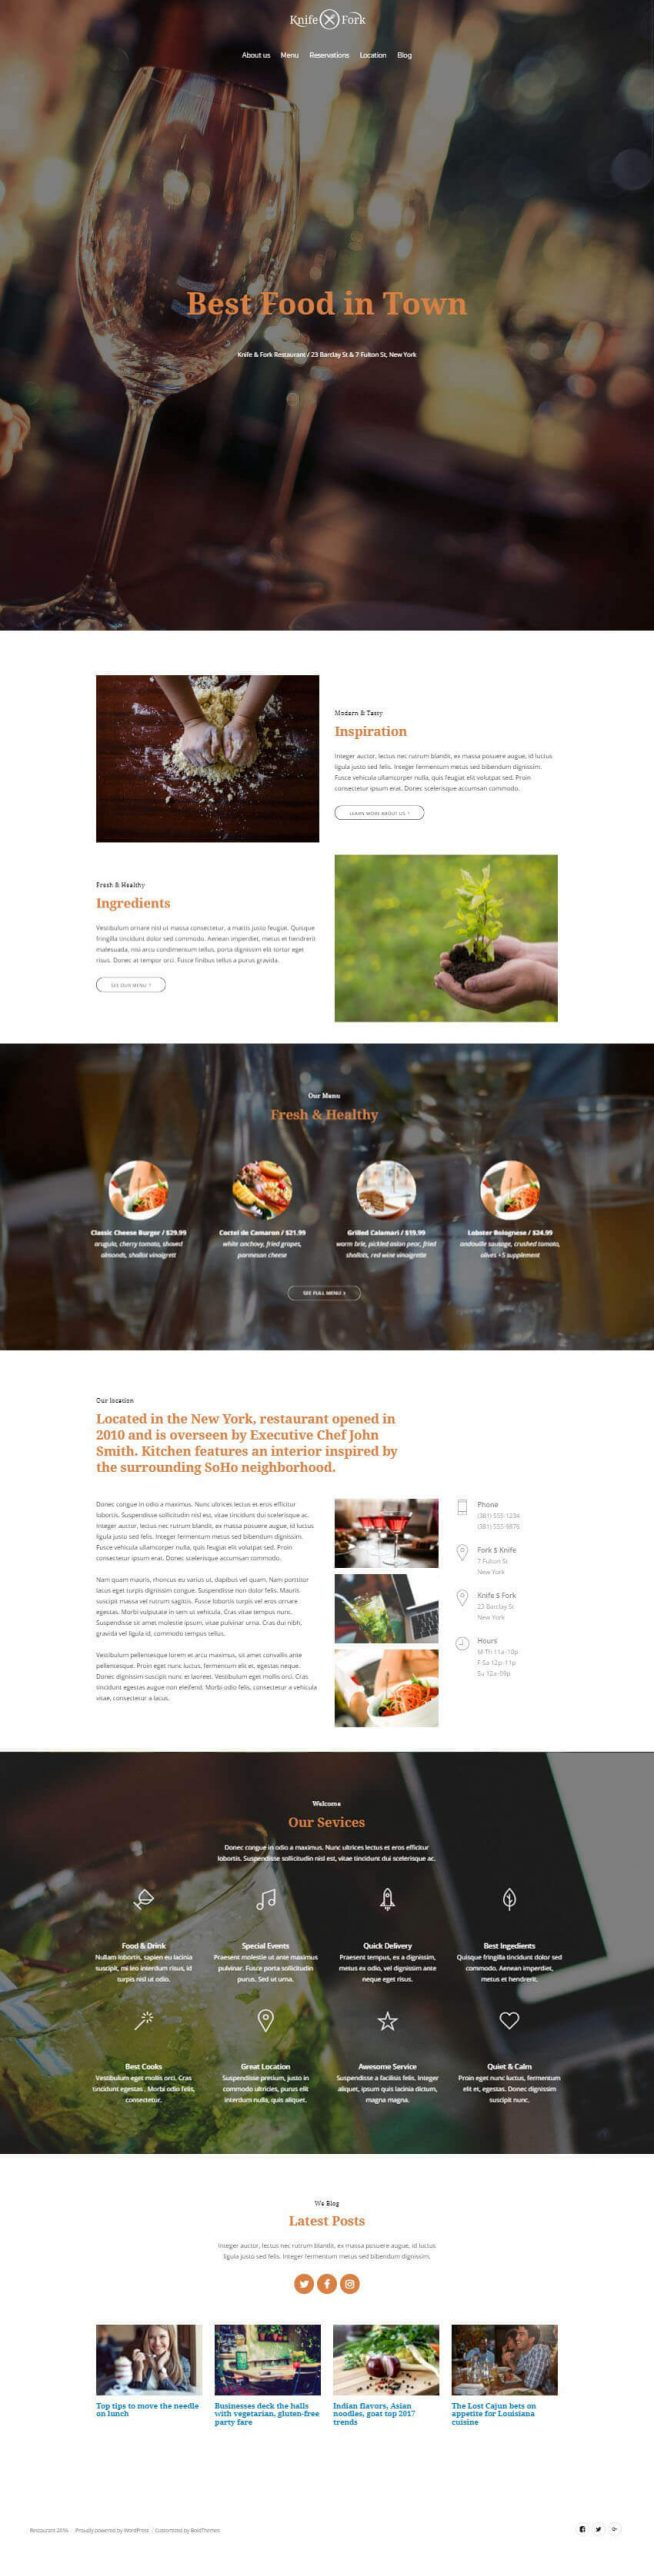 http://demos.bold-themes.com/wp-content/uploads/2019/11/Restaurant-2016-scaled.jpg